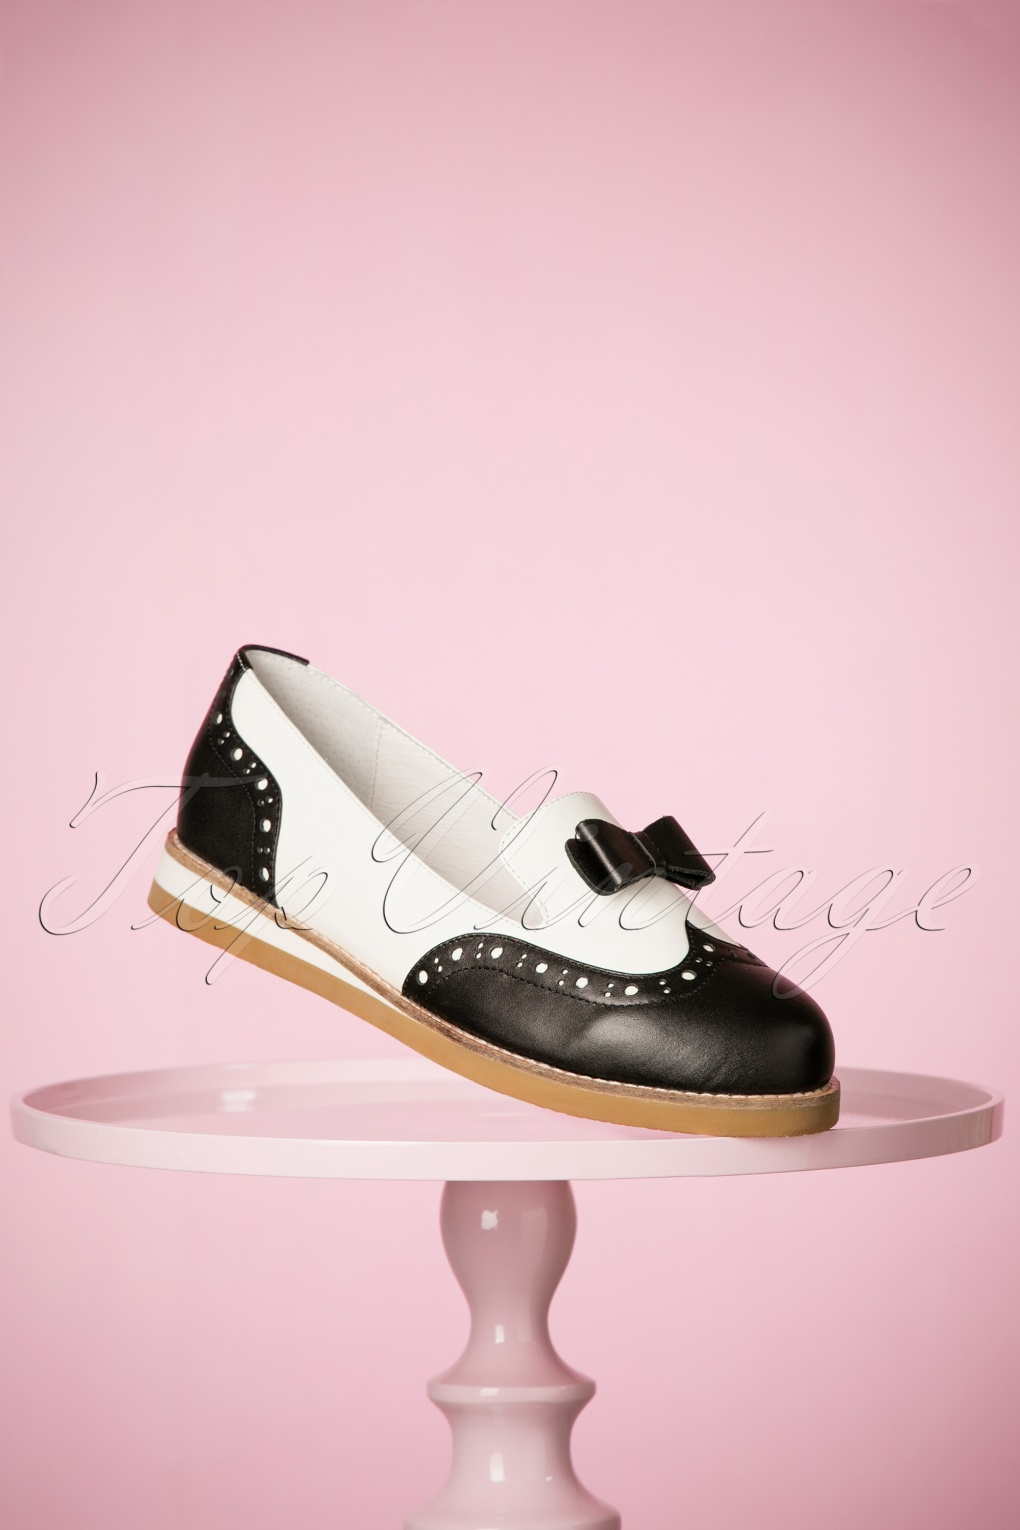 Vintage Style Shoes, Vintage Inspired Shoes 50s Cecilia Loafer Love Shoes in Black and White £107.98 AT vintagedancer.com